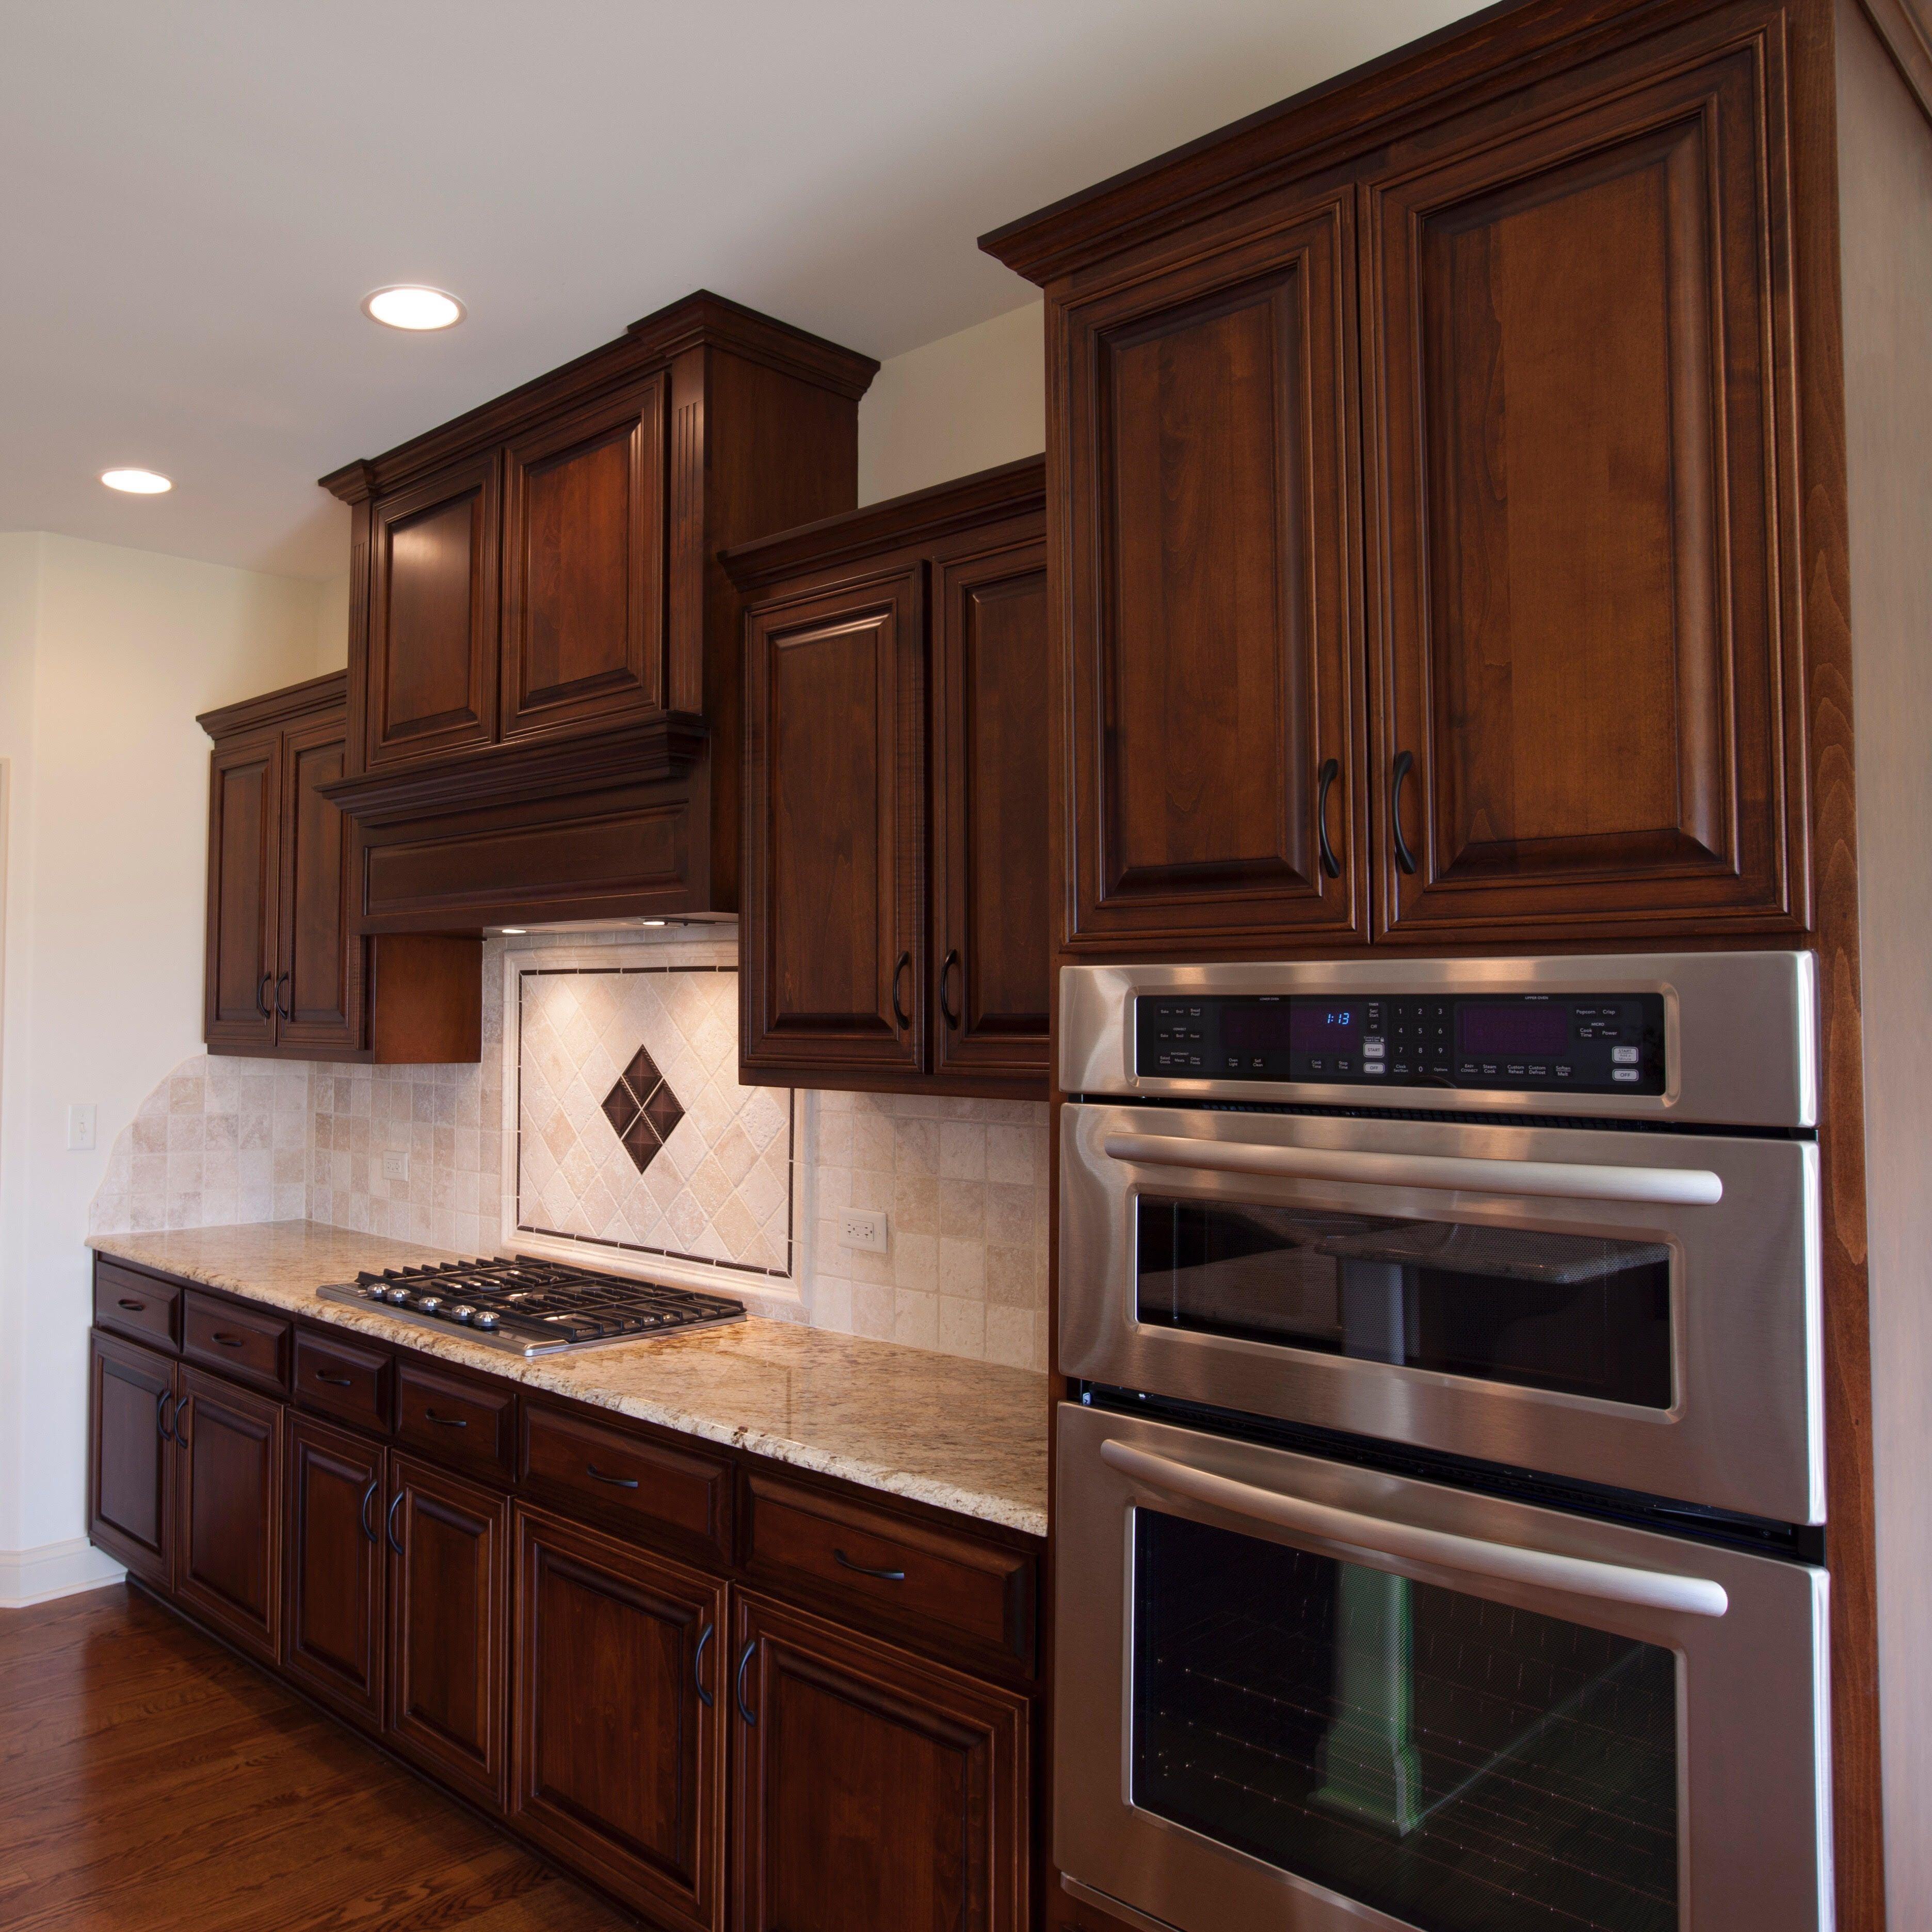 Ready For Raised Panels Raised Panels Provide A High Class And Luxurious Feel To Your Kitchen Home Improvement Companies Beautiful Cabinet Quality Cabinets